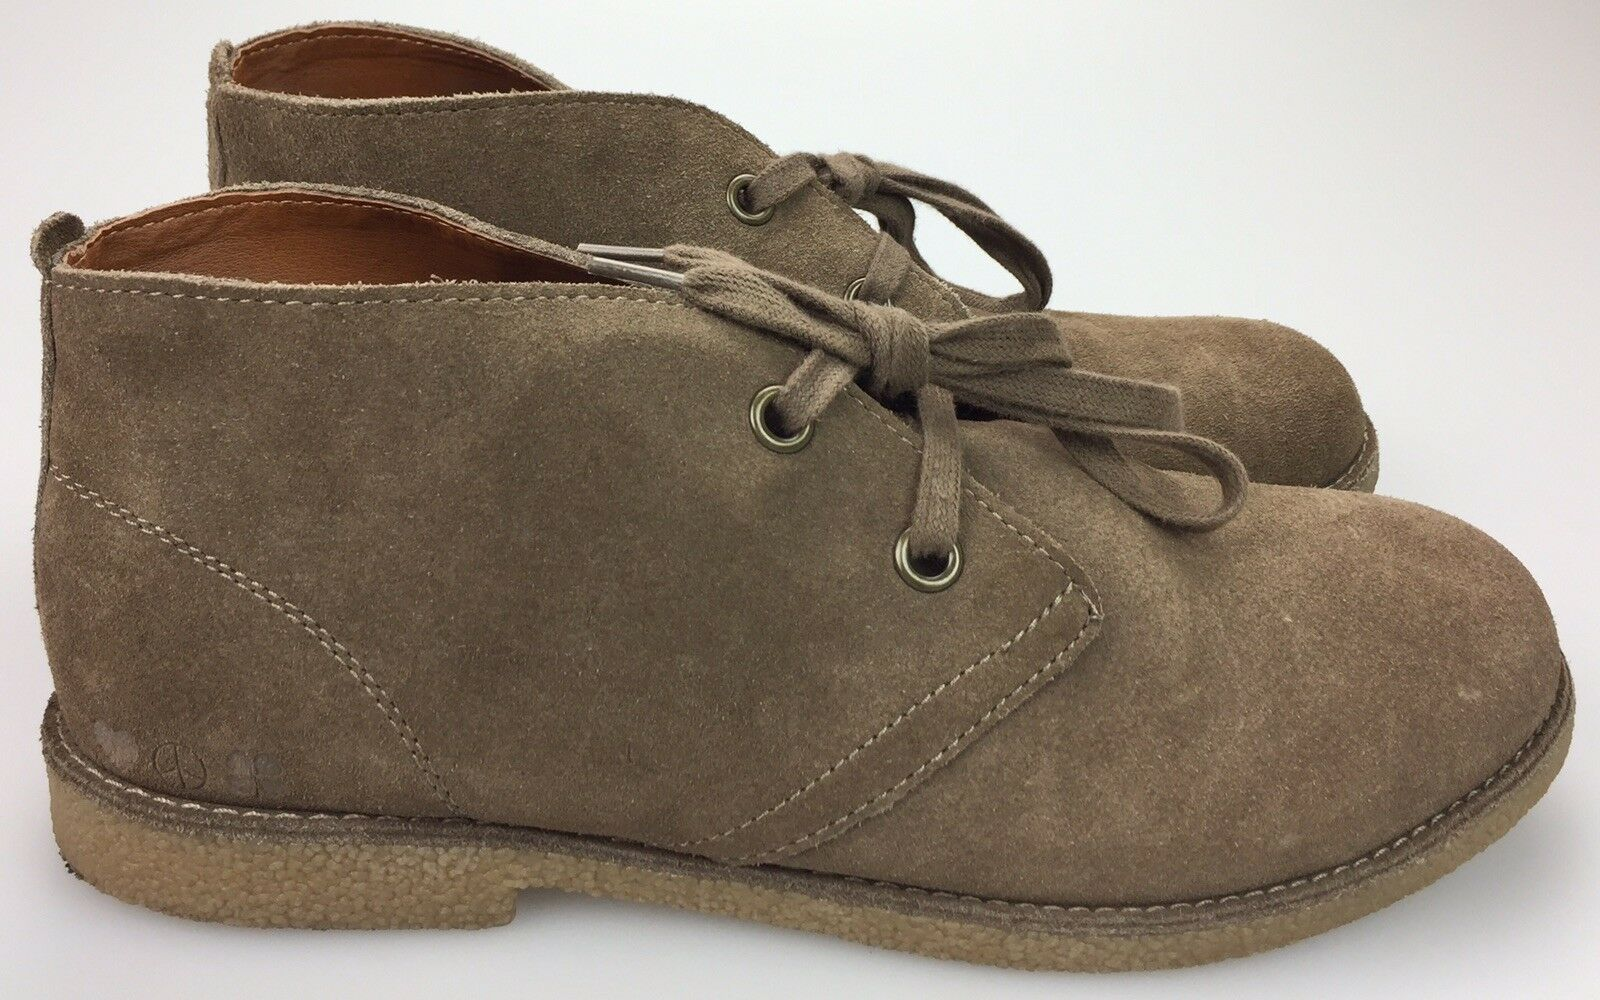 Lucky Brand Women's Brown Suede Leather Lace Up Chukka Booties Size 9.5